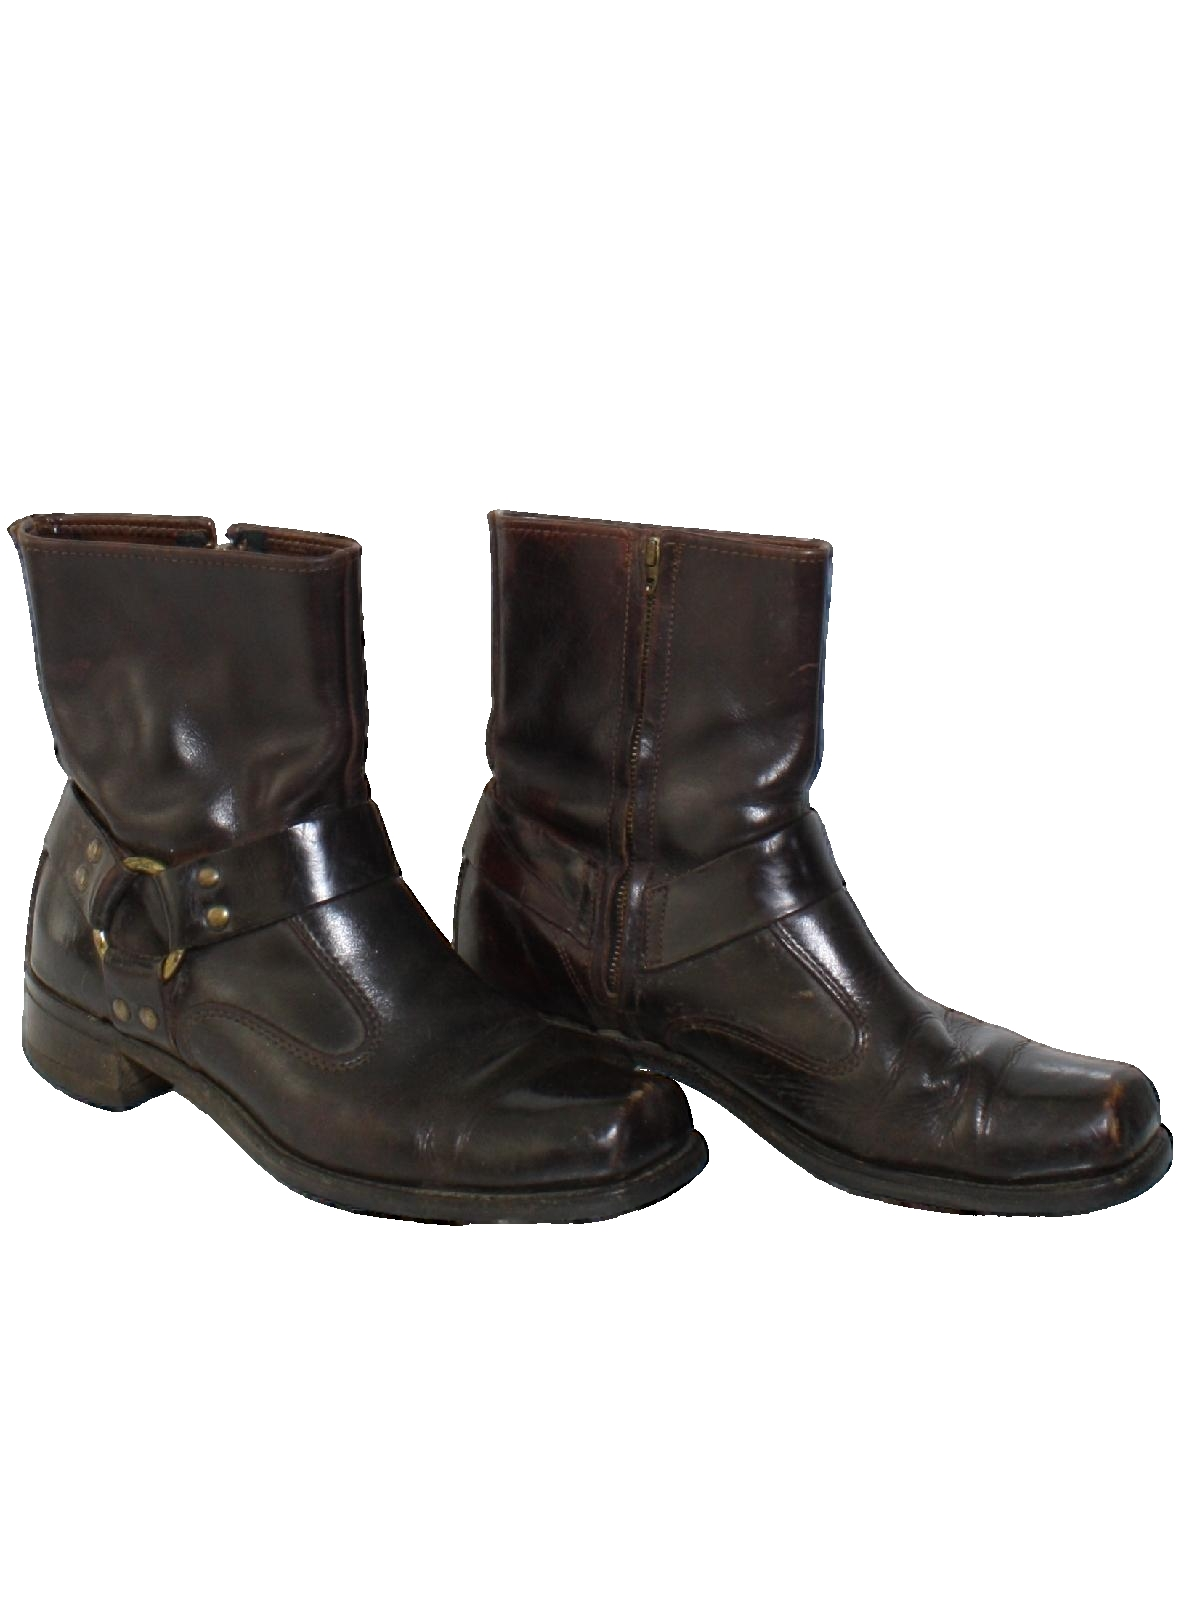 712bf3dfa0a3b 1970's Size Label Mens Mod Motorcycle Ankle Boots Shoes